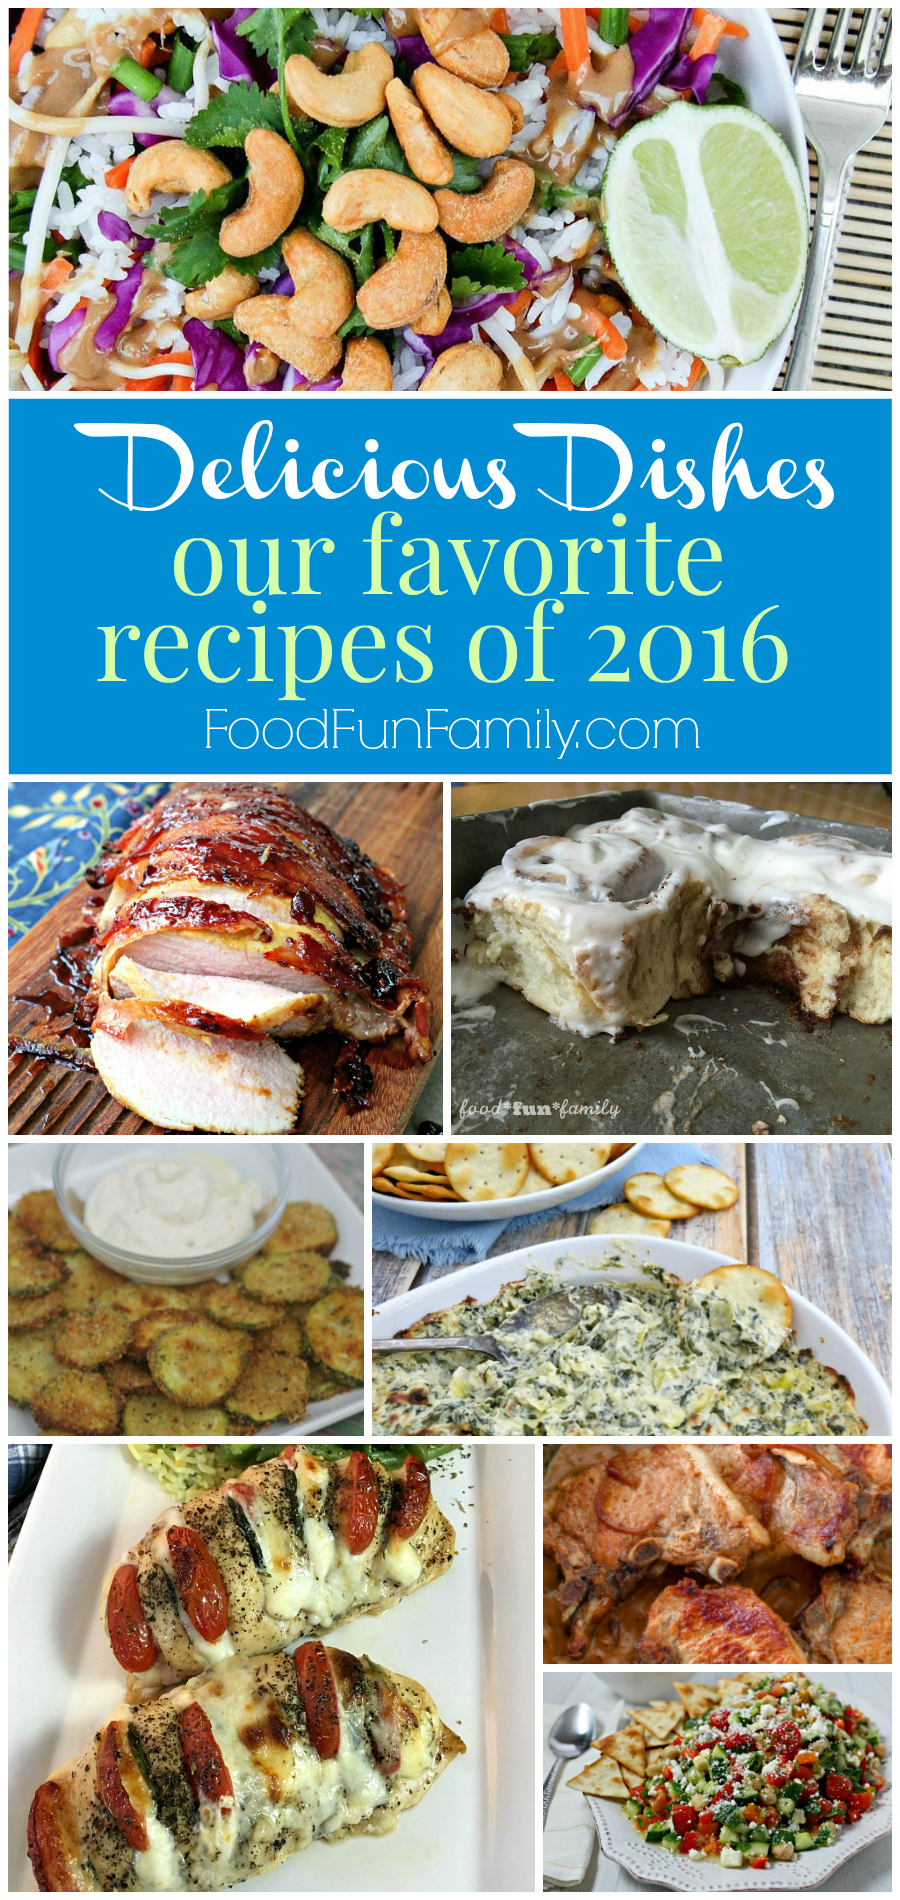 Our Favorite Recipes of 2016 from the Delicious Dishes hosts, from salads to main dishes to desserts. Find the recipes at Food Fun Family